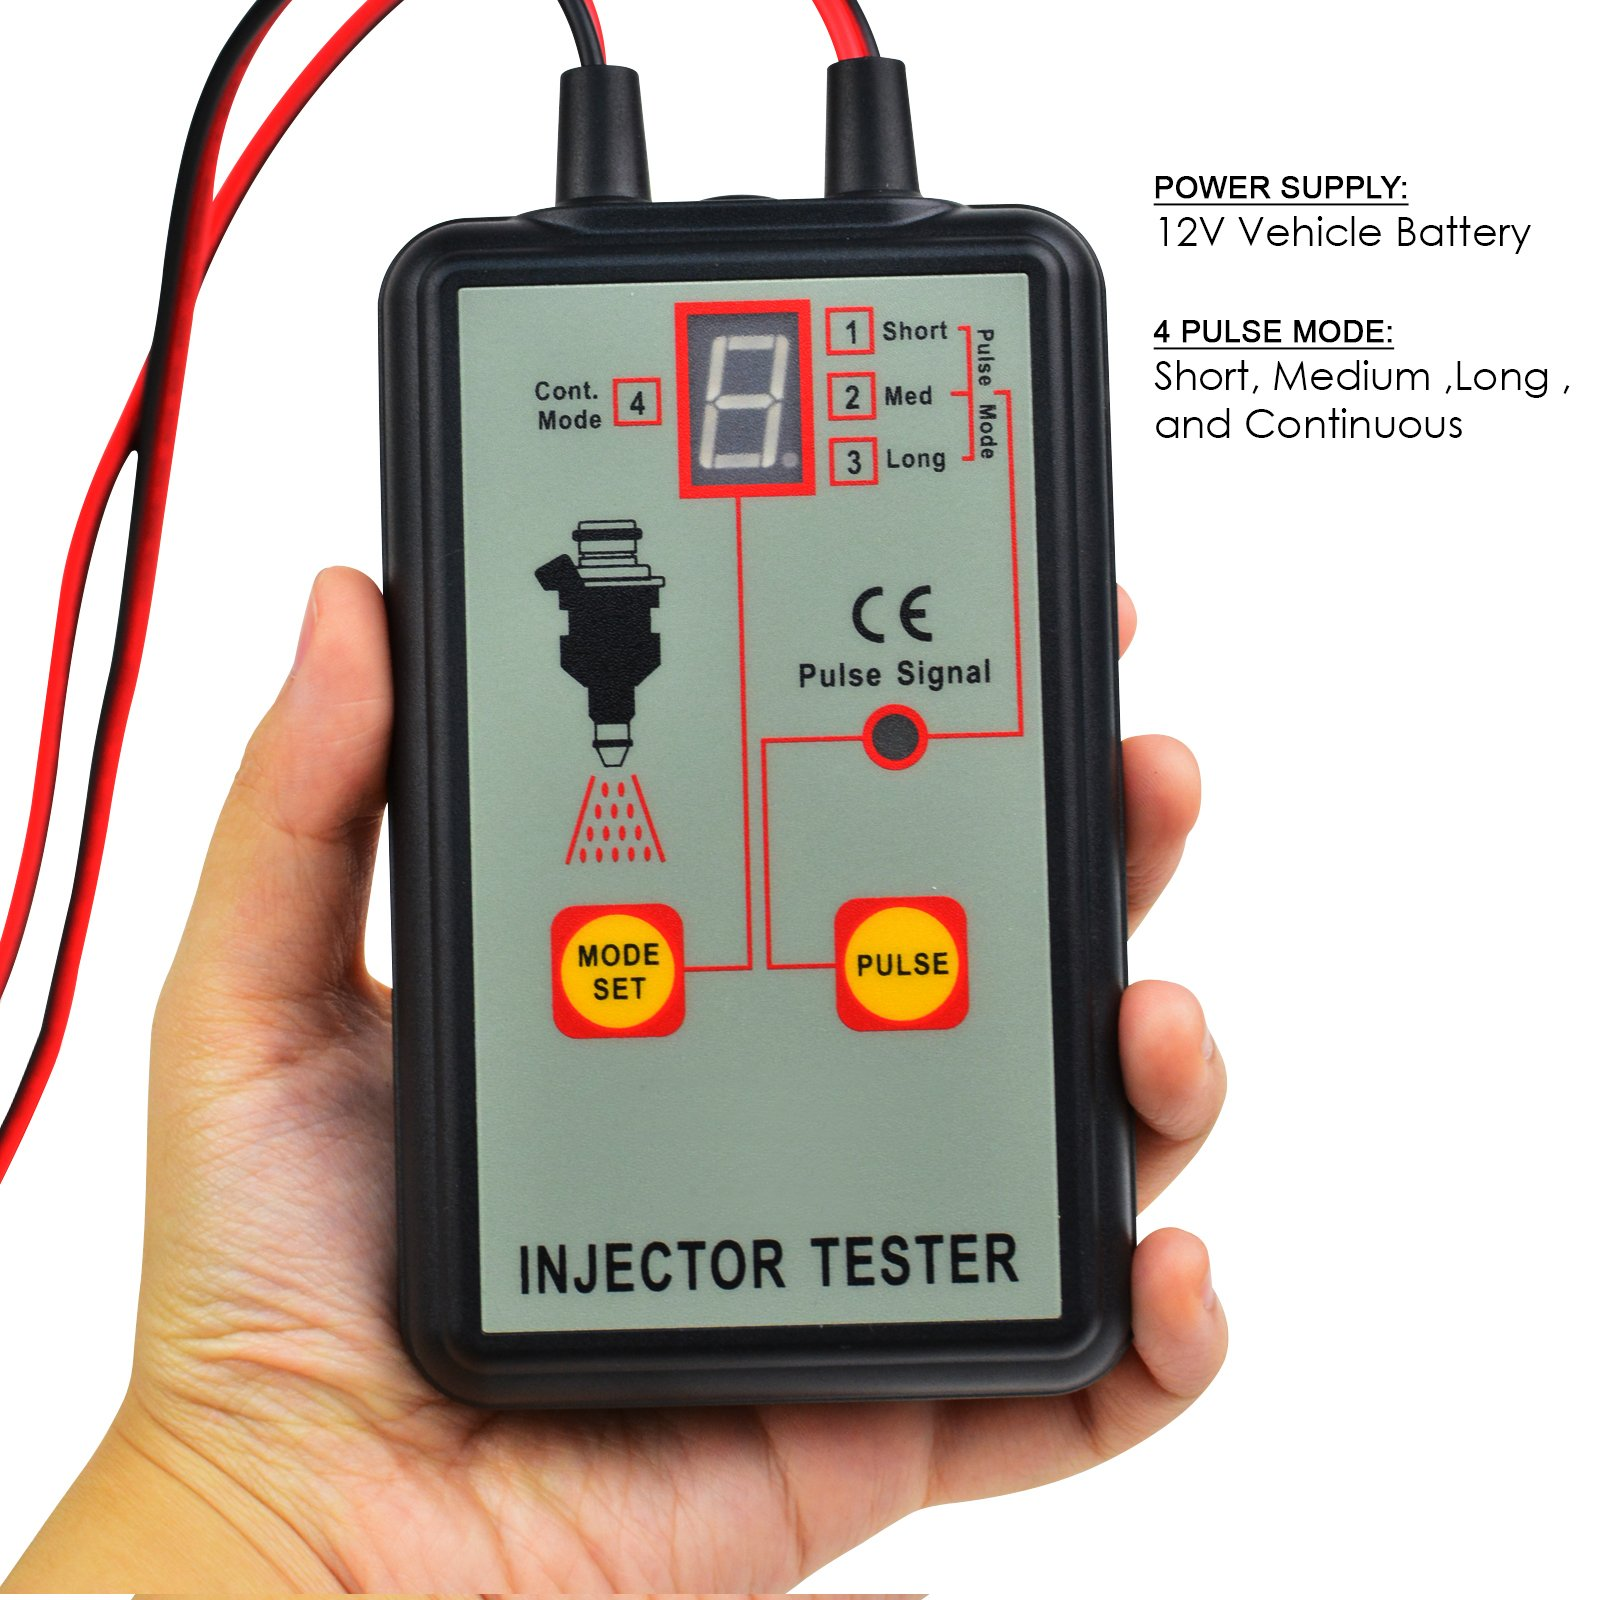 Automotive Fuel Injector Tester, 12V 4 Pulse Modes, Handheld Car Vehicle Fuel Pressure System Diagnostic Scan Testing Tool Gauge, Individual Test Stuck/Leaking/Burnt-out Problem by Gain Express (Image #4)